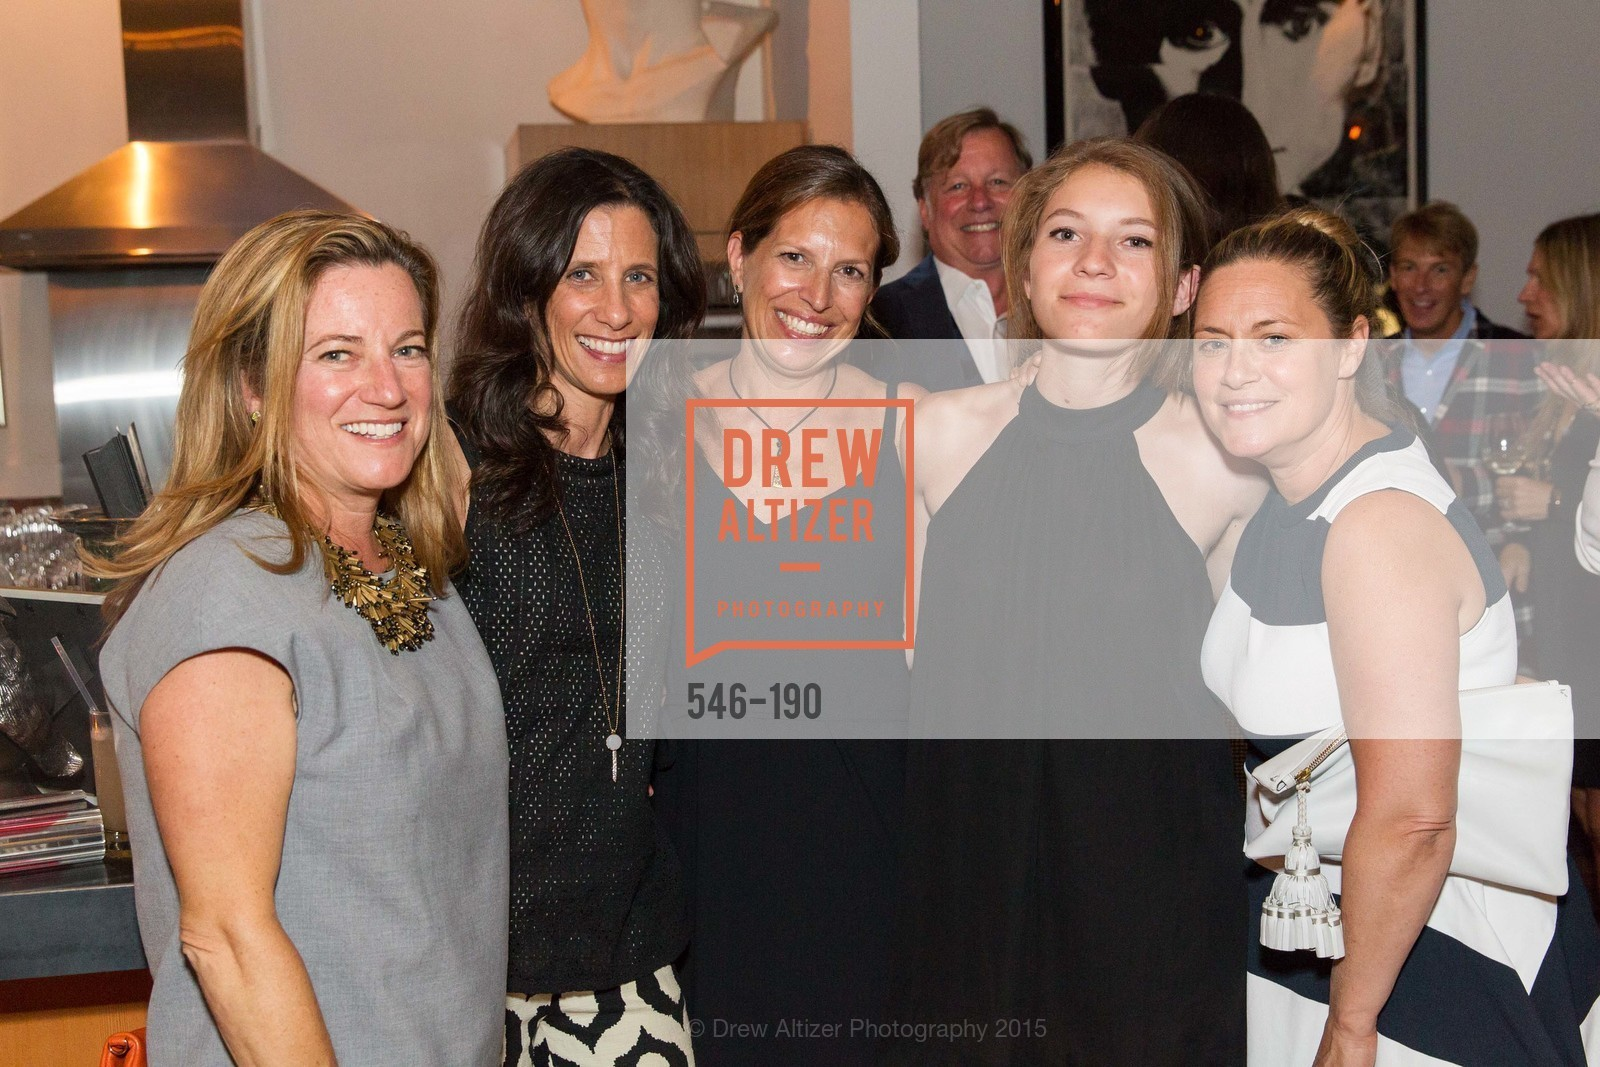 Carolyn Edwards, Jodi Liano, Diane Blake, Charlotte Blake, Amy Blake, KEN FULK'S New Furniture Line Unveiling at THE MAGIC FACTORY, The Magic Factory. 310 7th St, June 25th, 2015,Drew Altizer, Drew Altizer Photography, full-service agency, private events, San Francisco photographer, photographer california